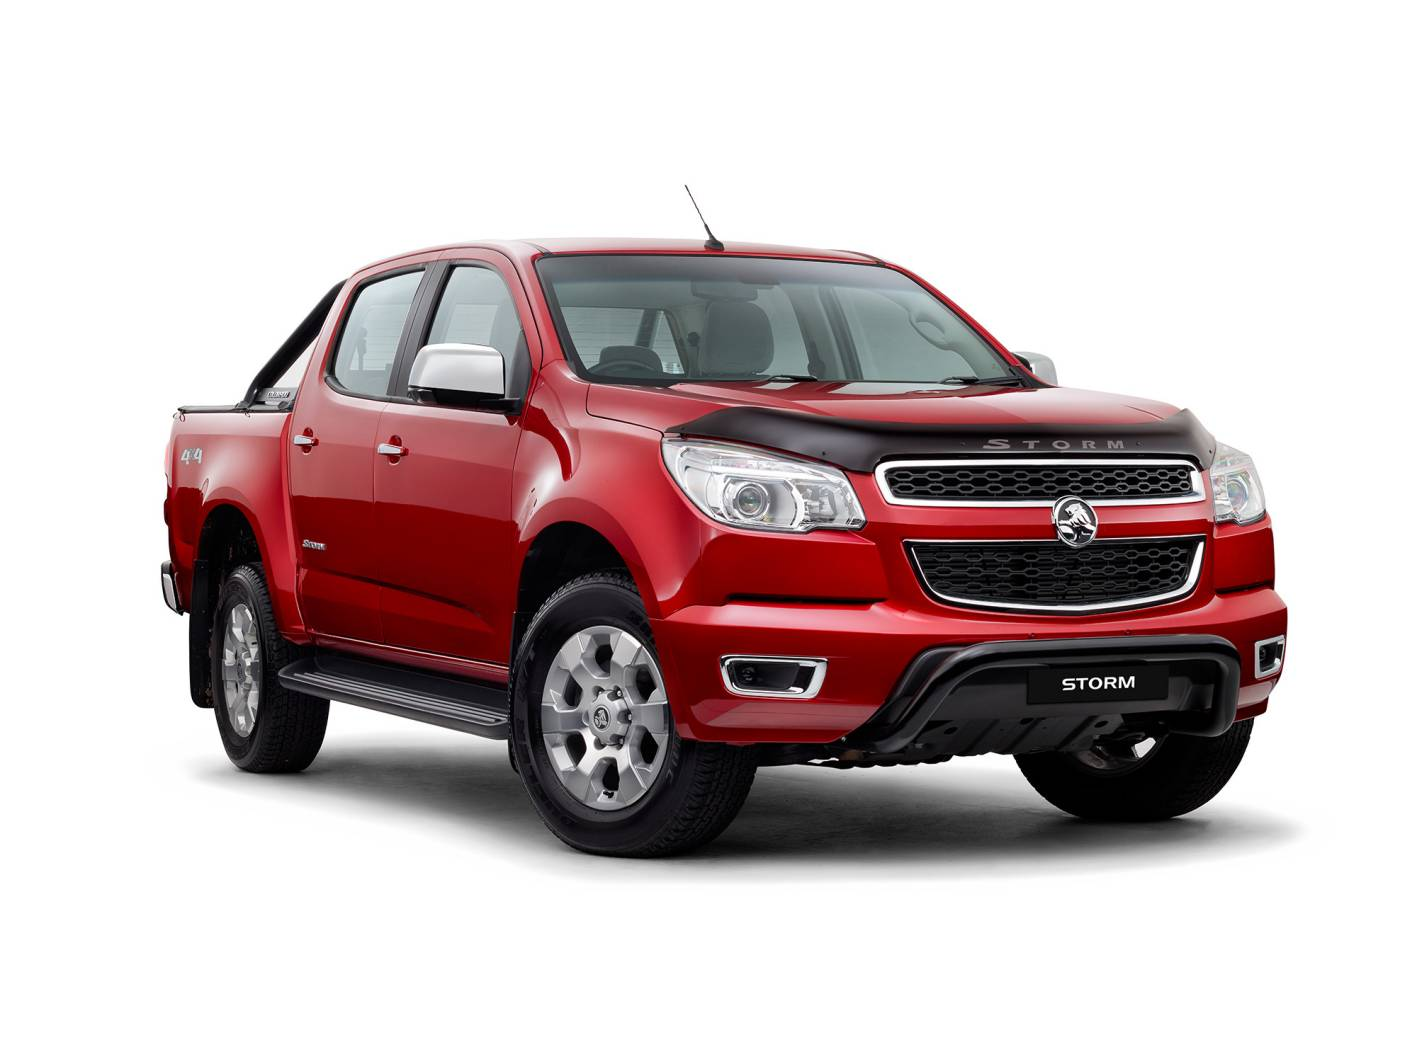 News - 2015 Holden Colorado Storm